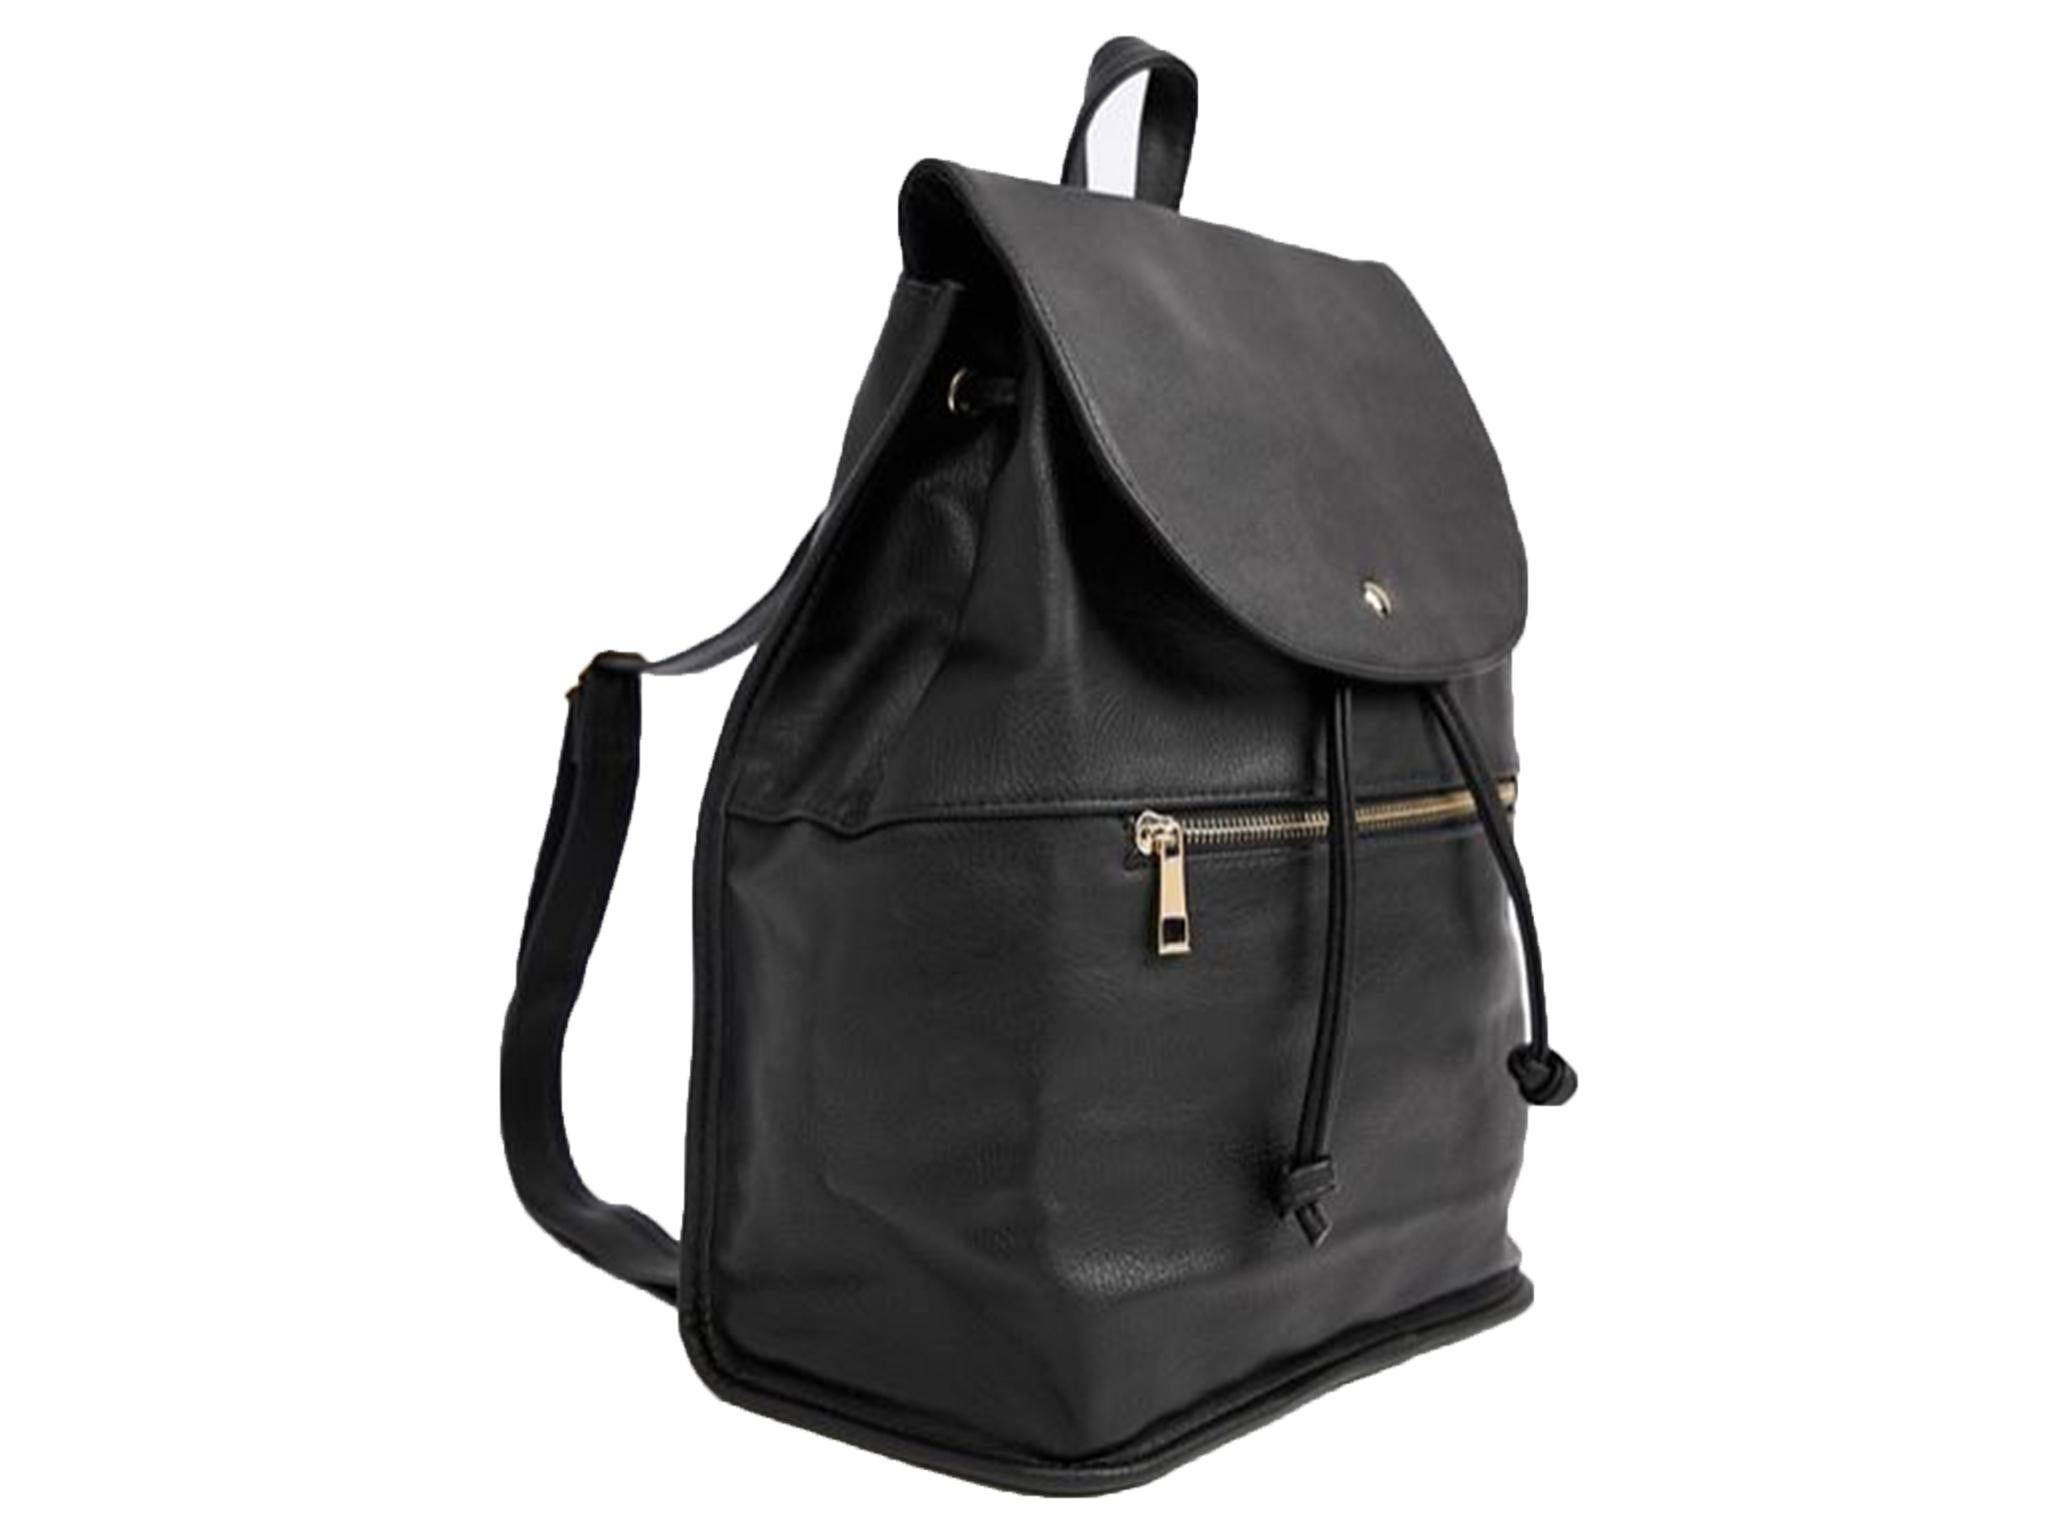 6d4e8ff4e6e8 This backpack from ASOS is adorable.